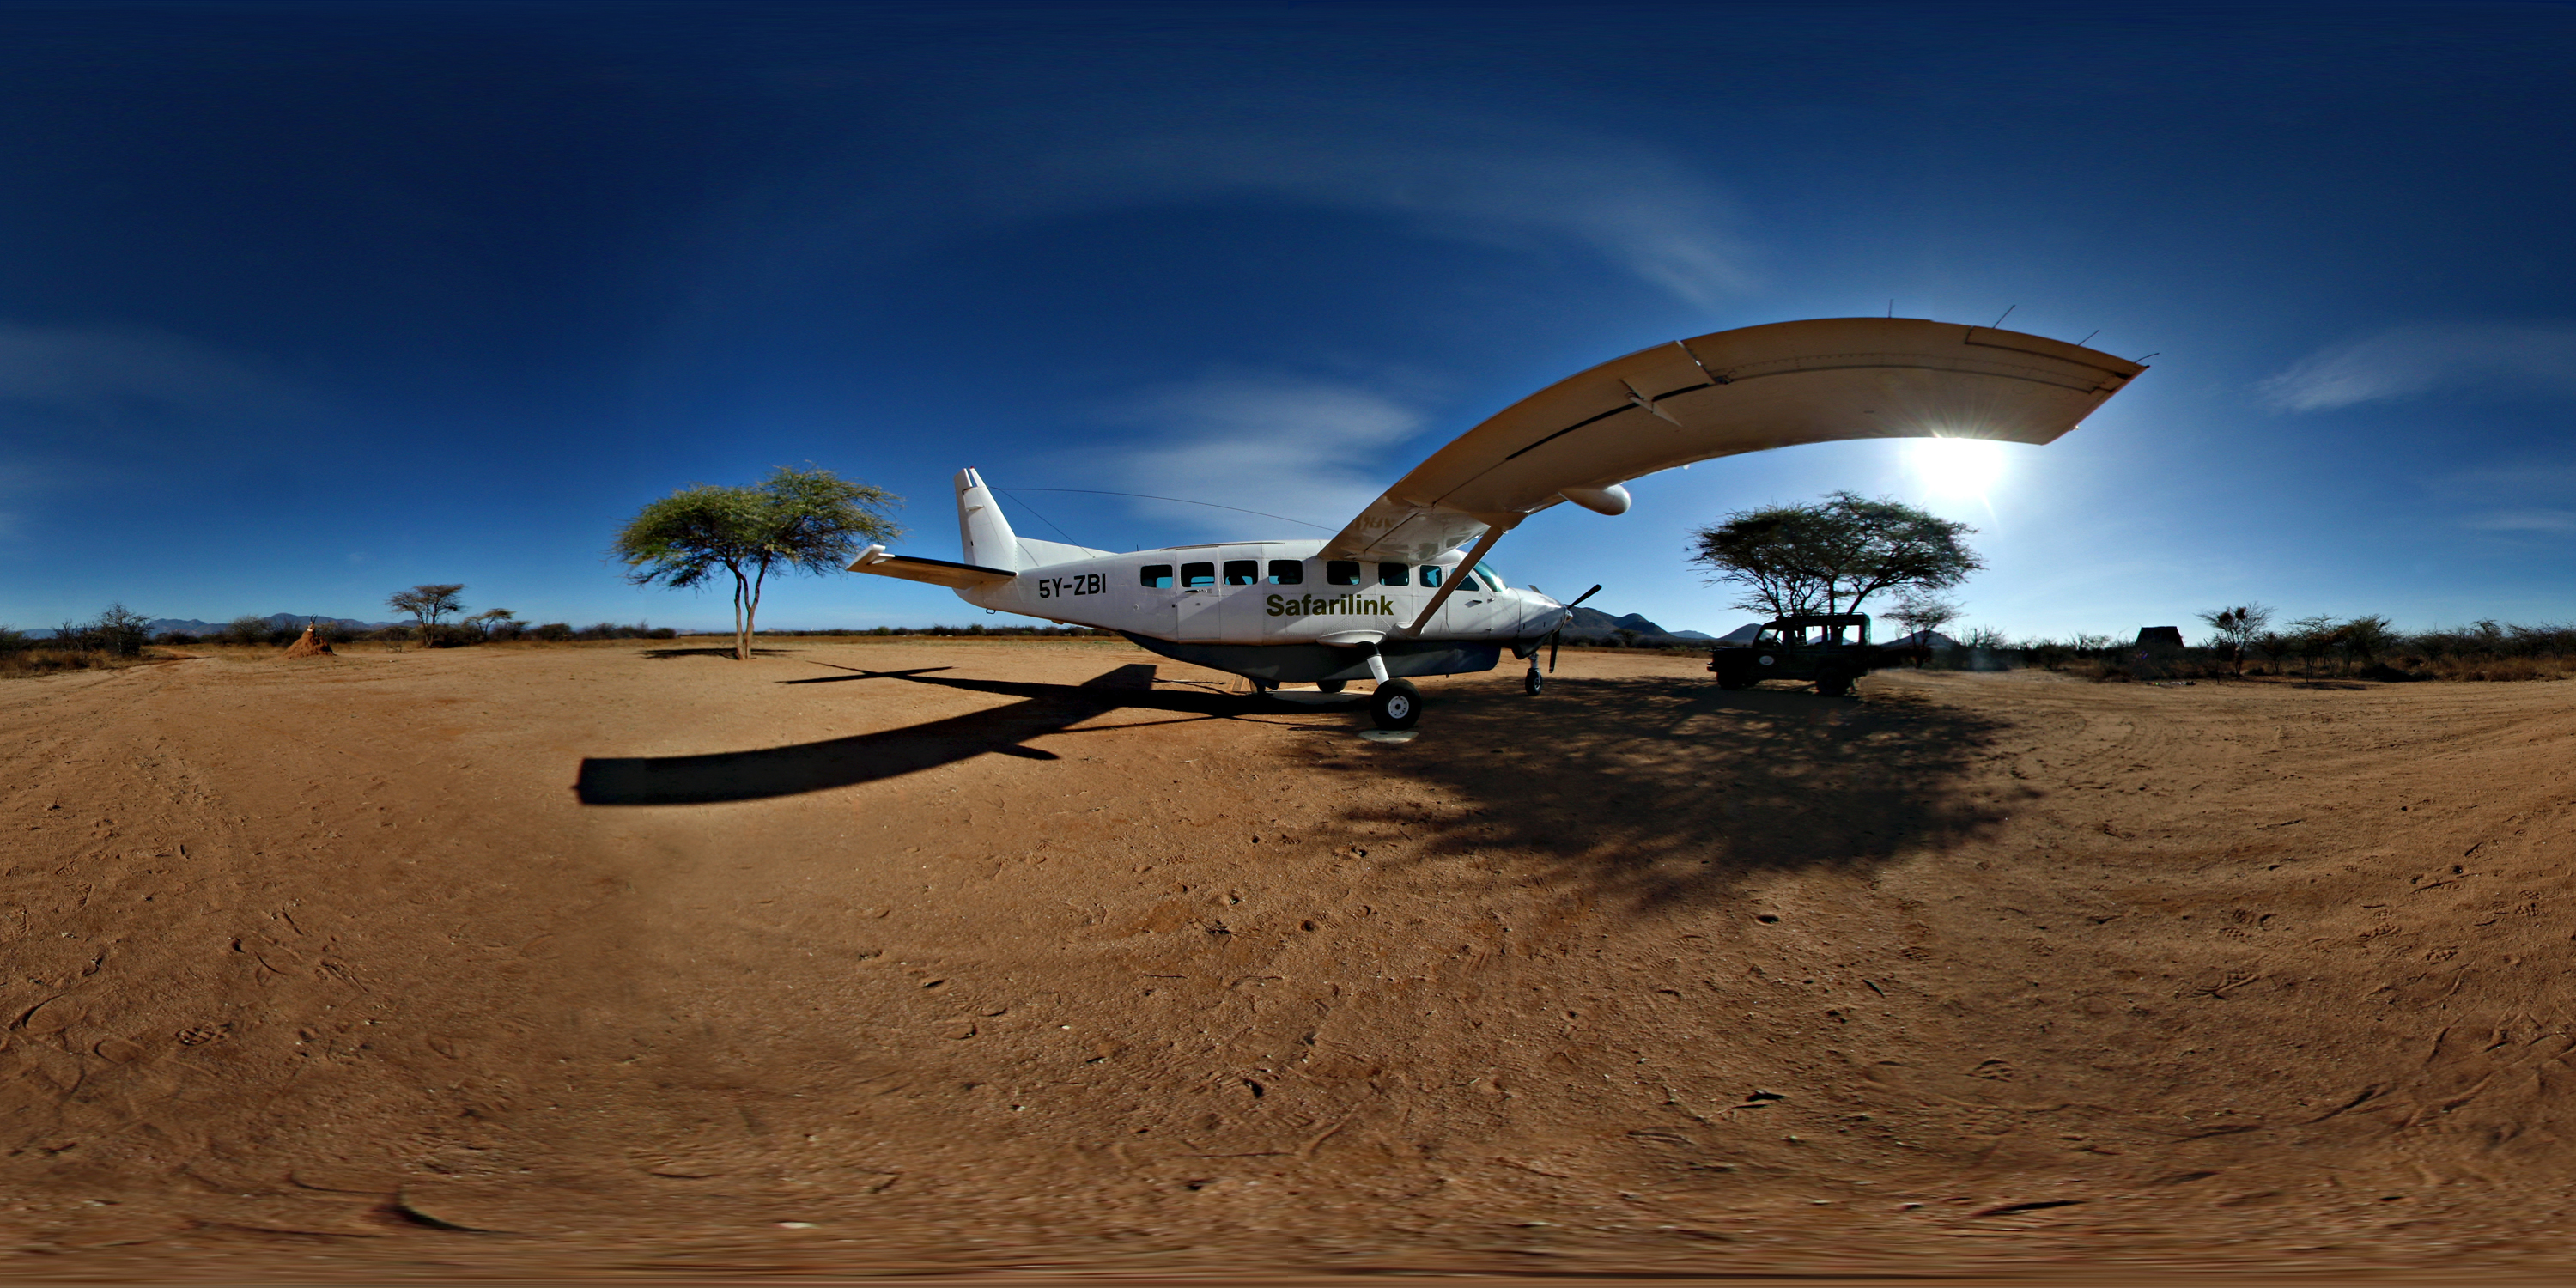 Bush Airstrip in Samburu, Kenya